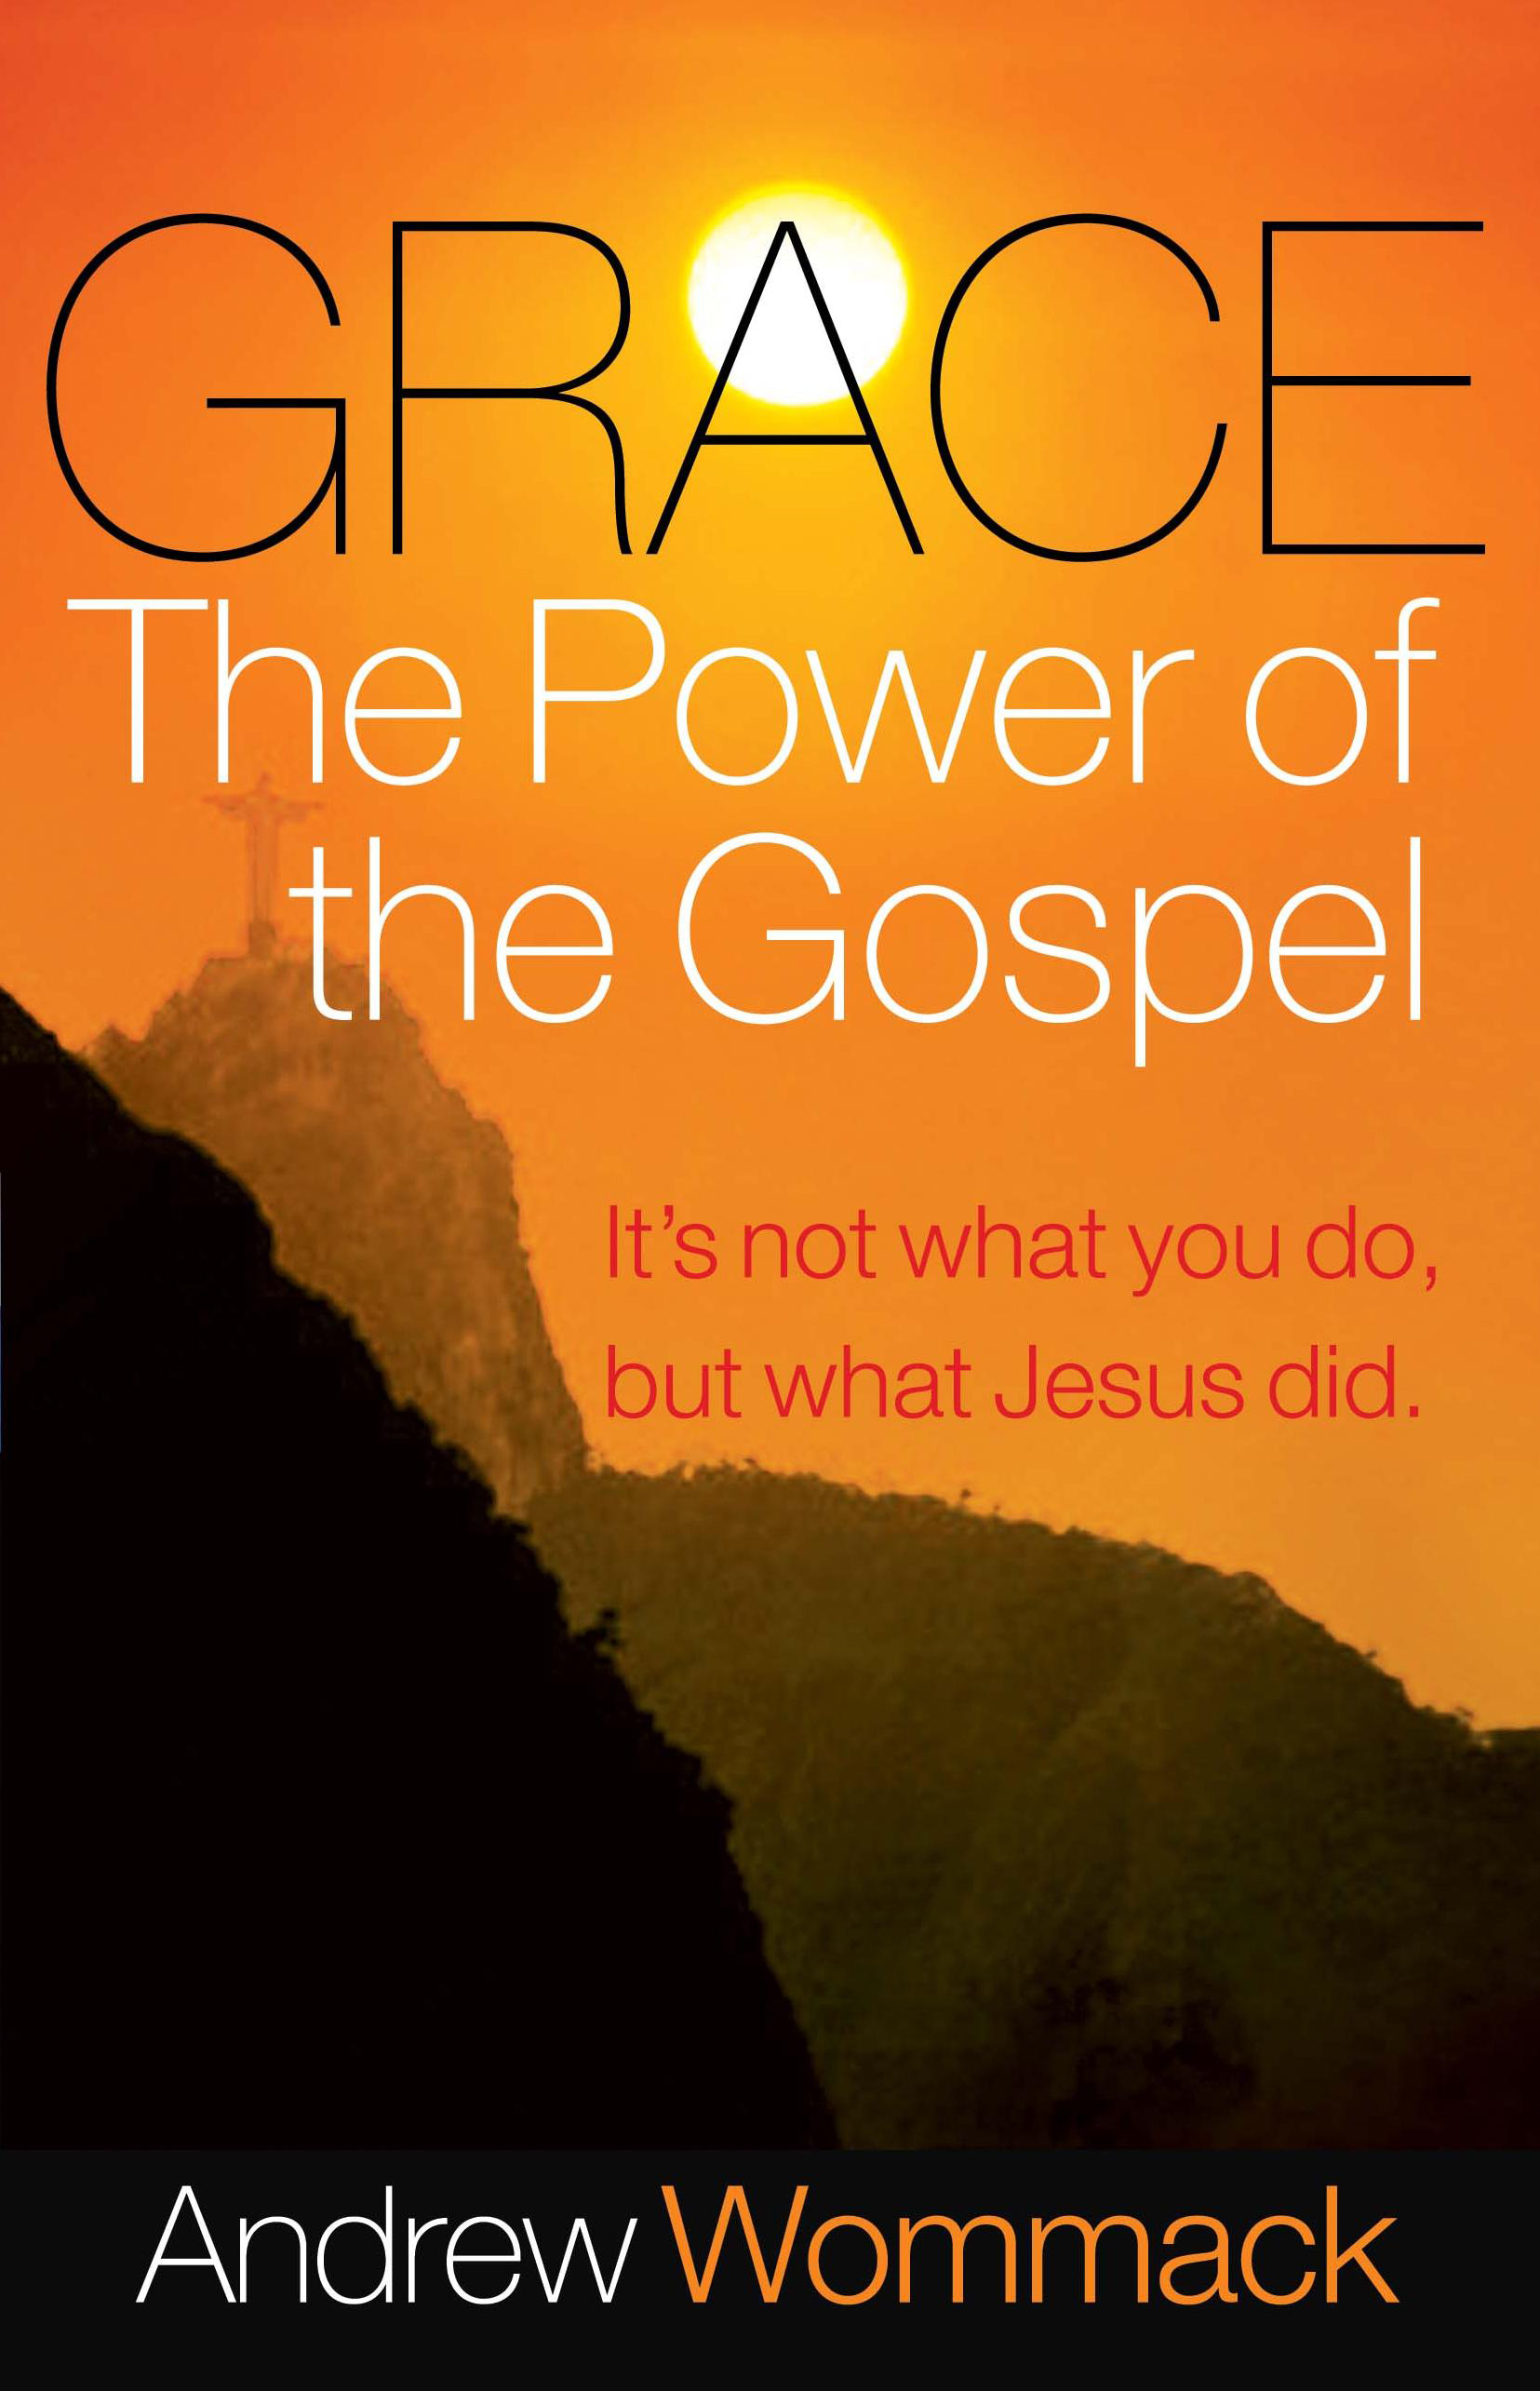 Grace, The Power of the Gospel By: Andrew Wommack